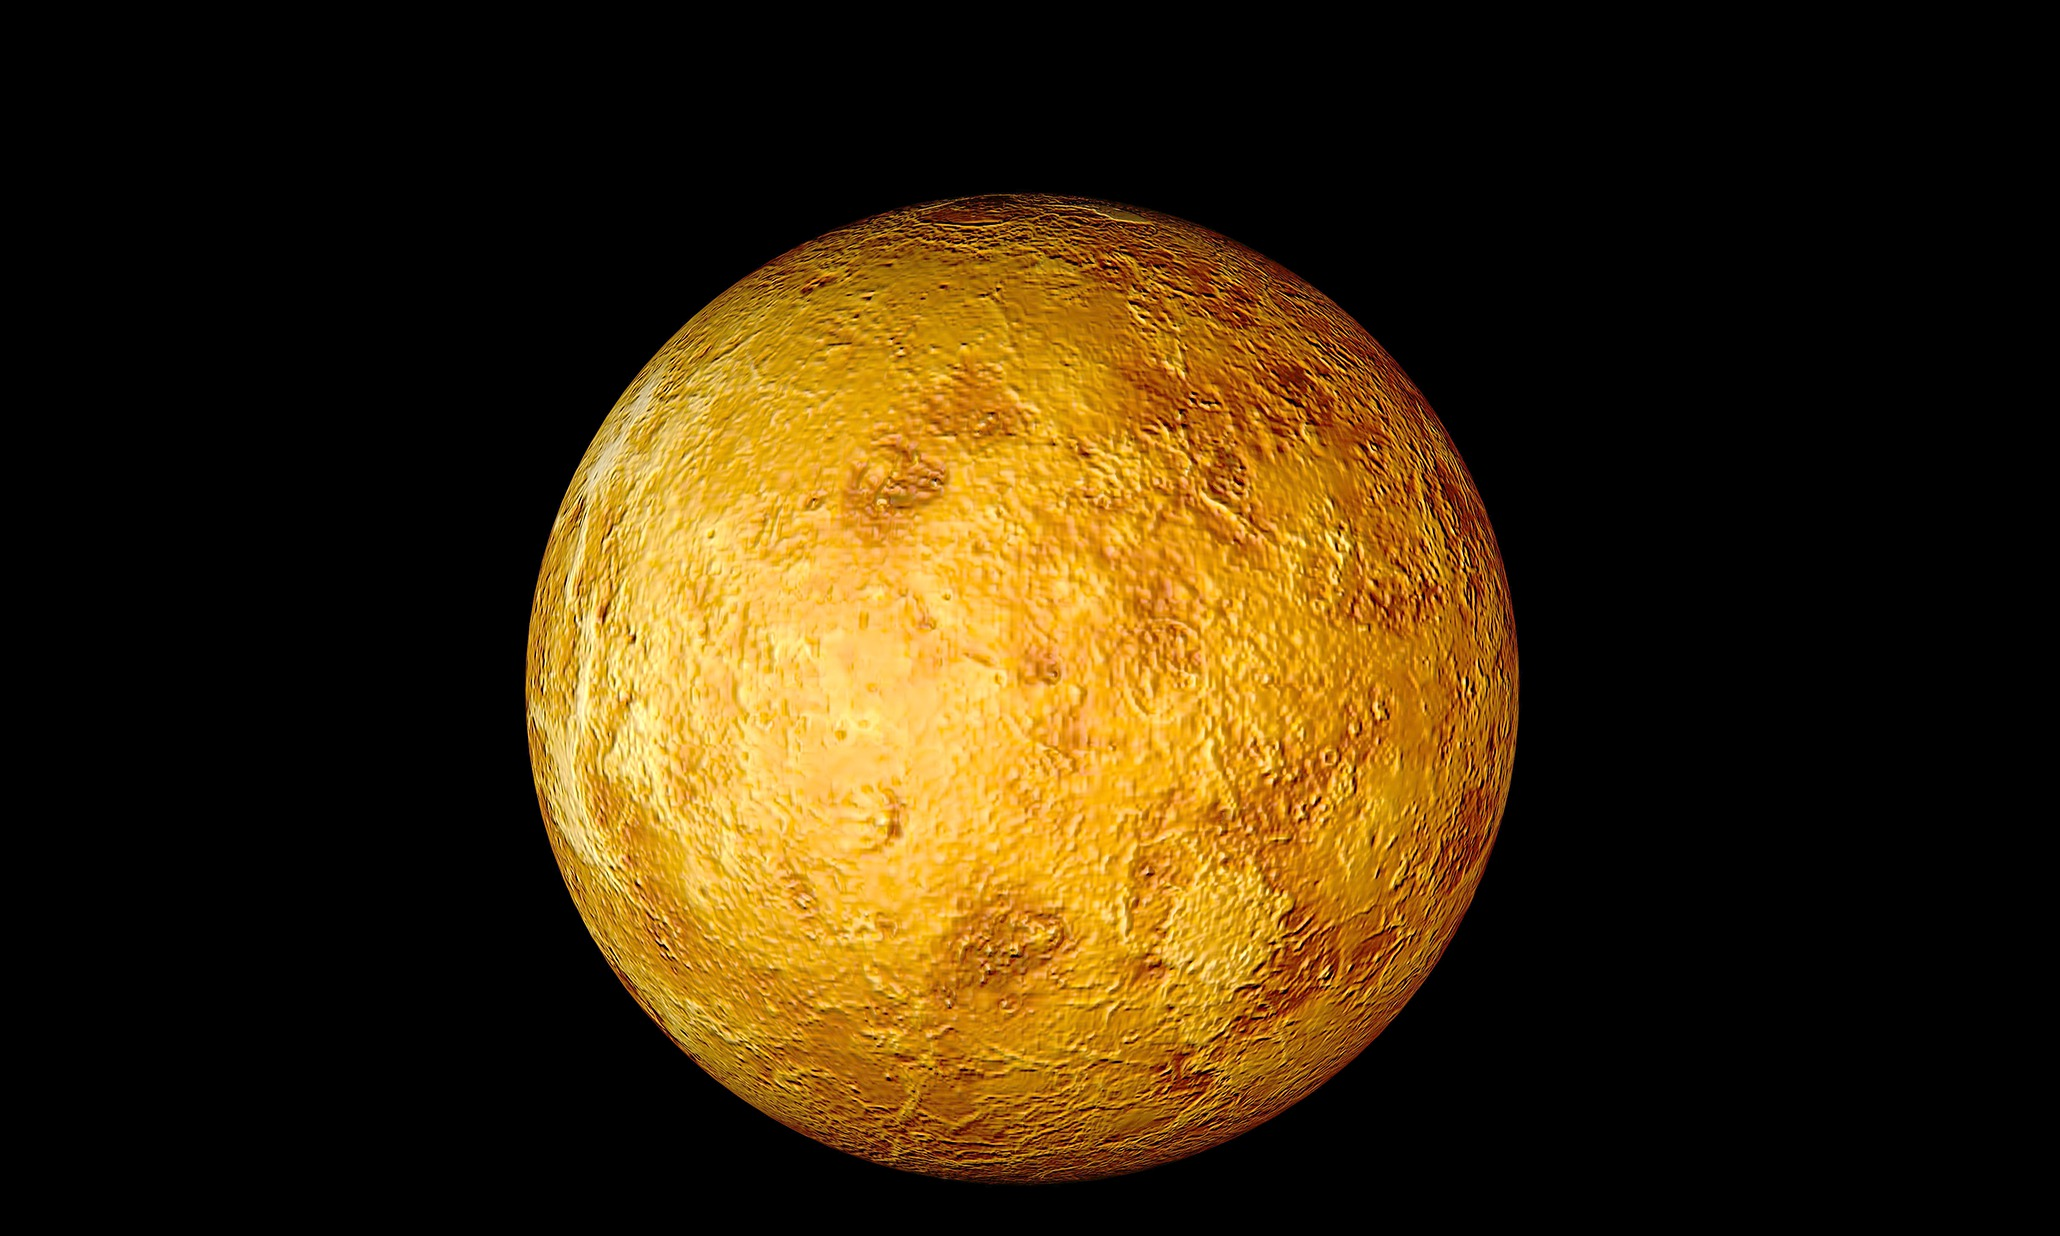 real venus planet pictures - photo #23